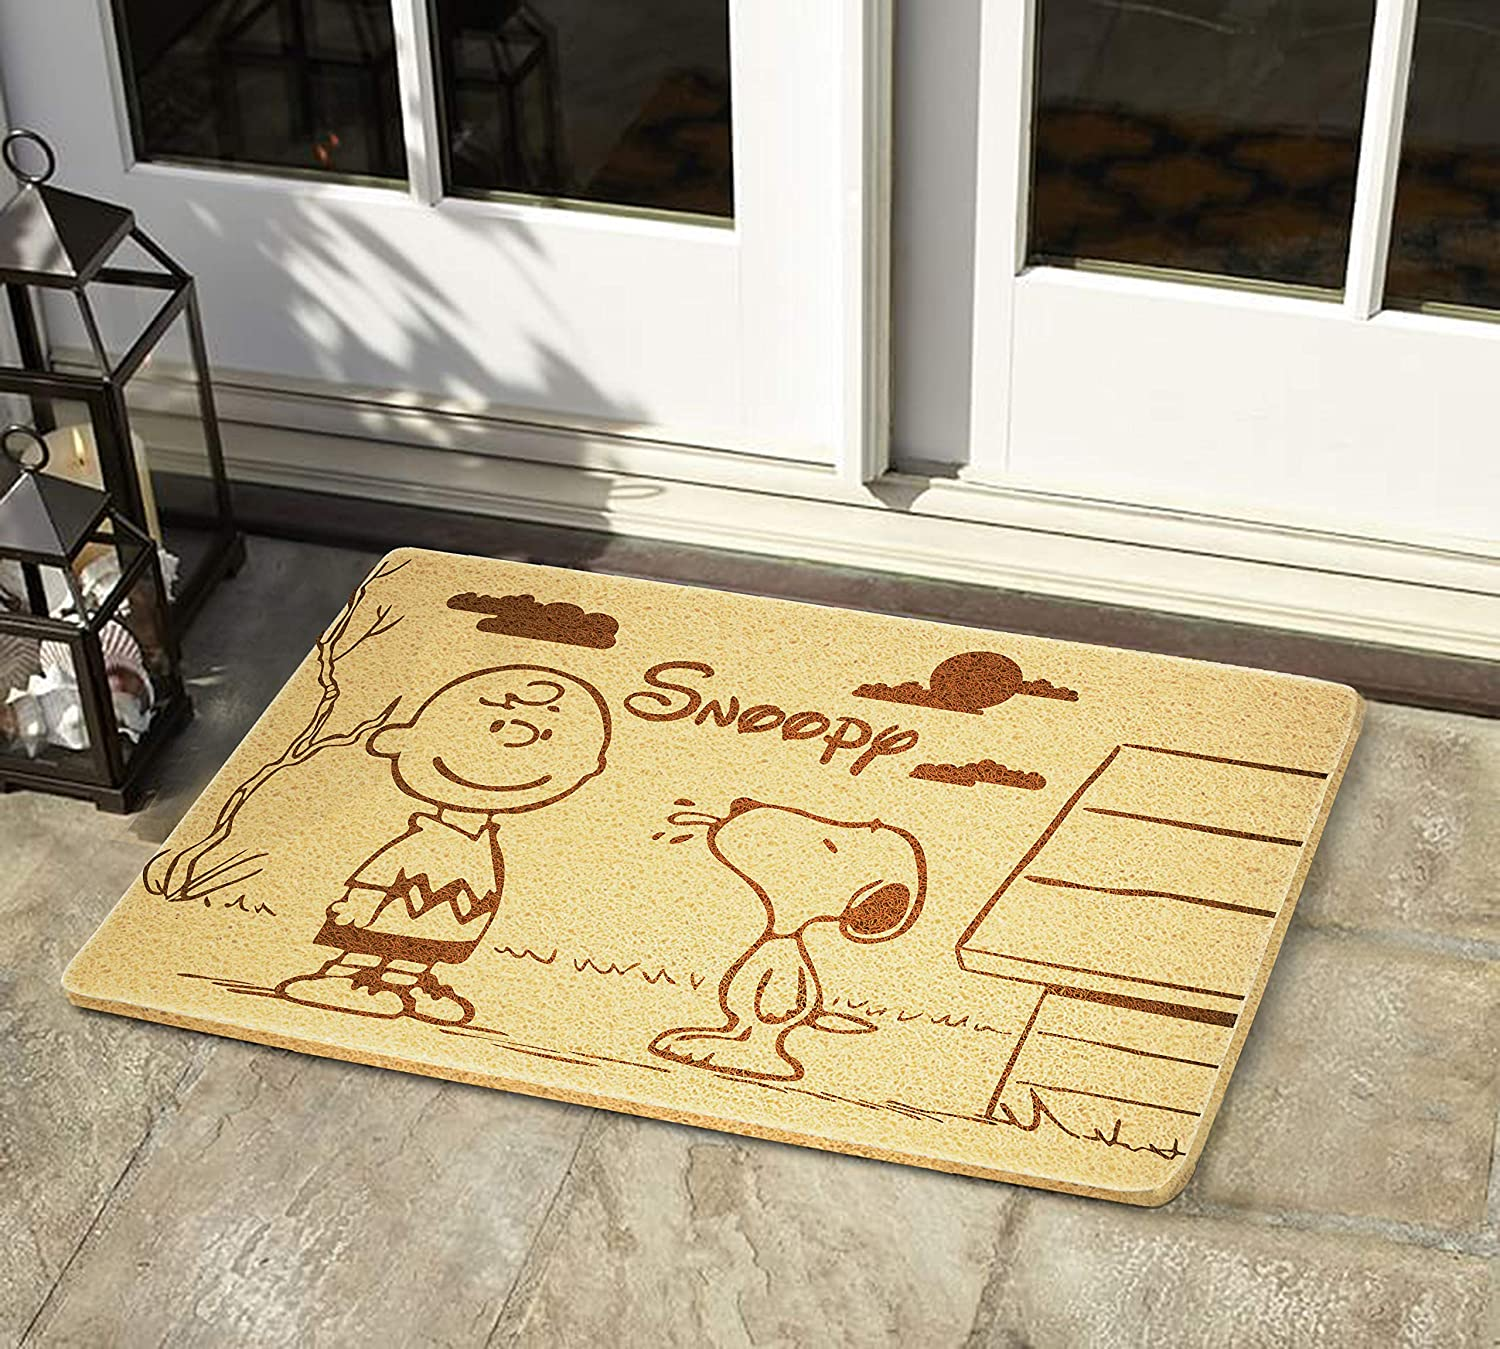 Art Finds Boutique Snoopy Peanuts Movie Size 24x16 inch Outdoor Decor Home Interior Doormat Design Birthday Wedding New House Gift Design